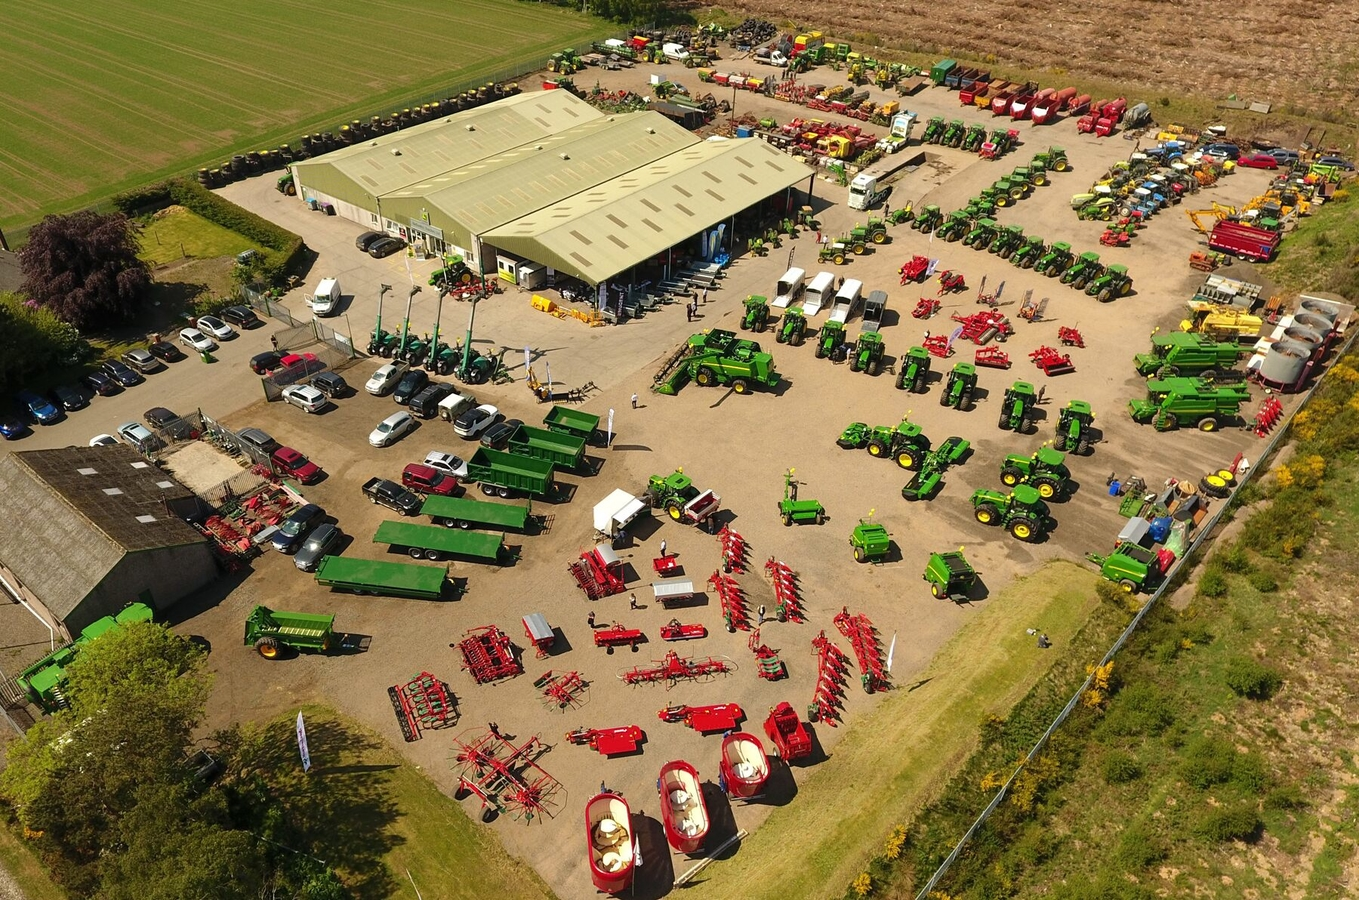 An aerial view of the Netherton Tractors outlet at Forfar in Angus.